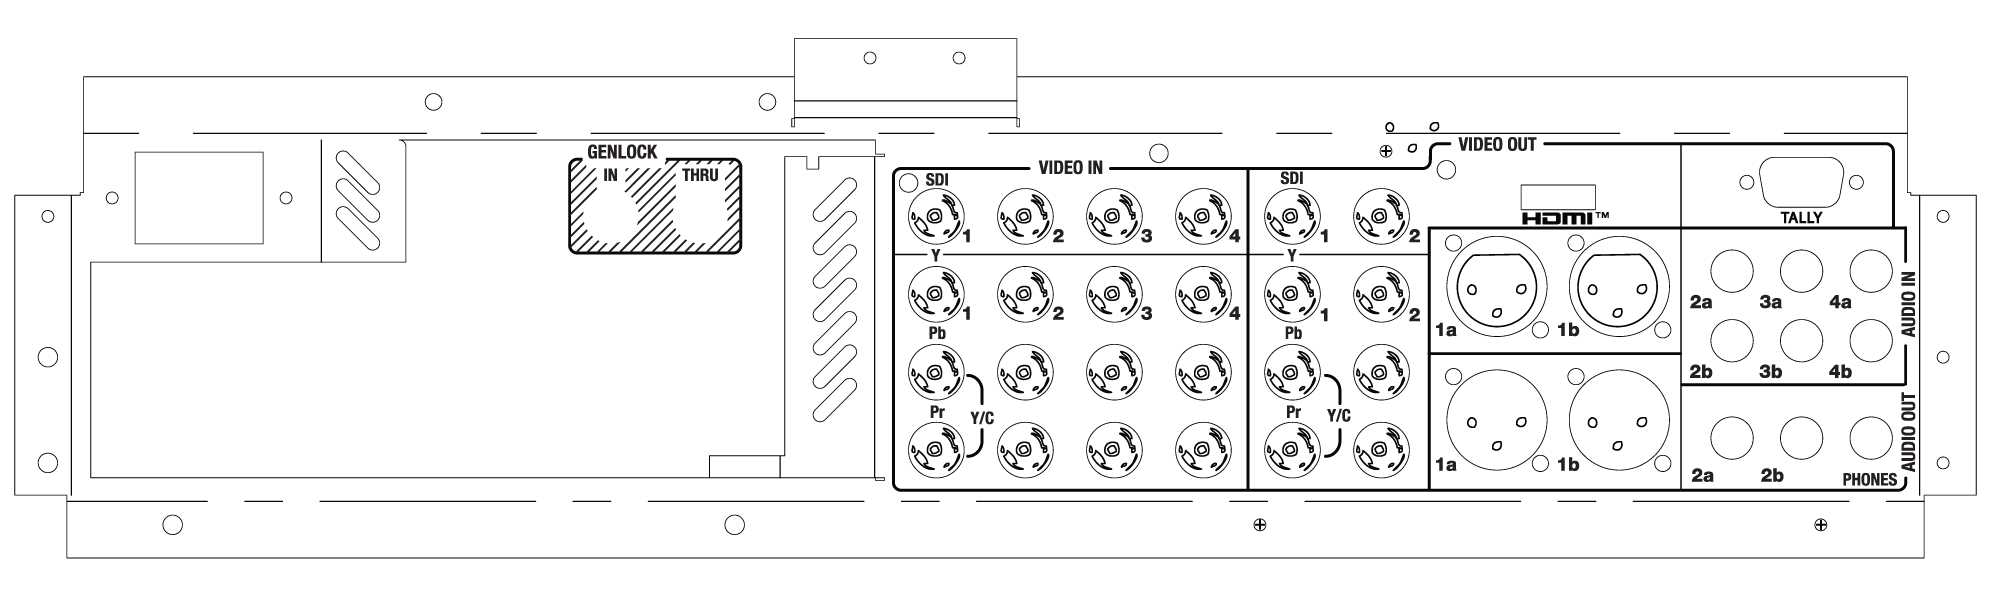 TriCaster 460 - Rear Panel Diagram